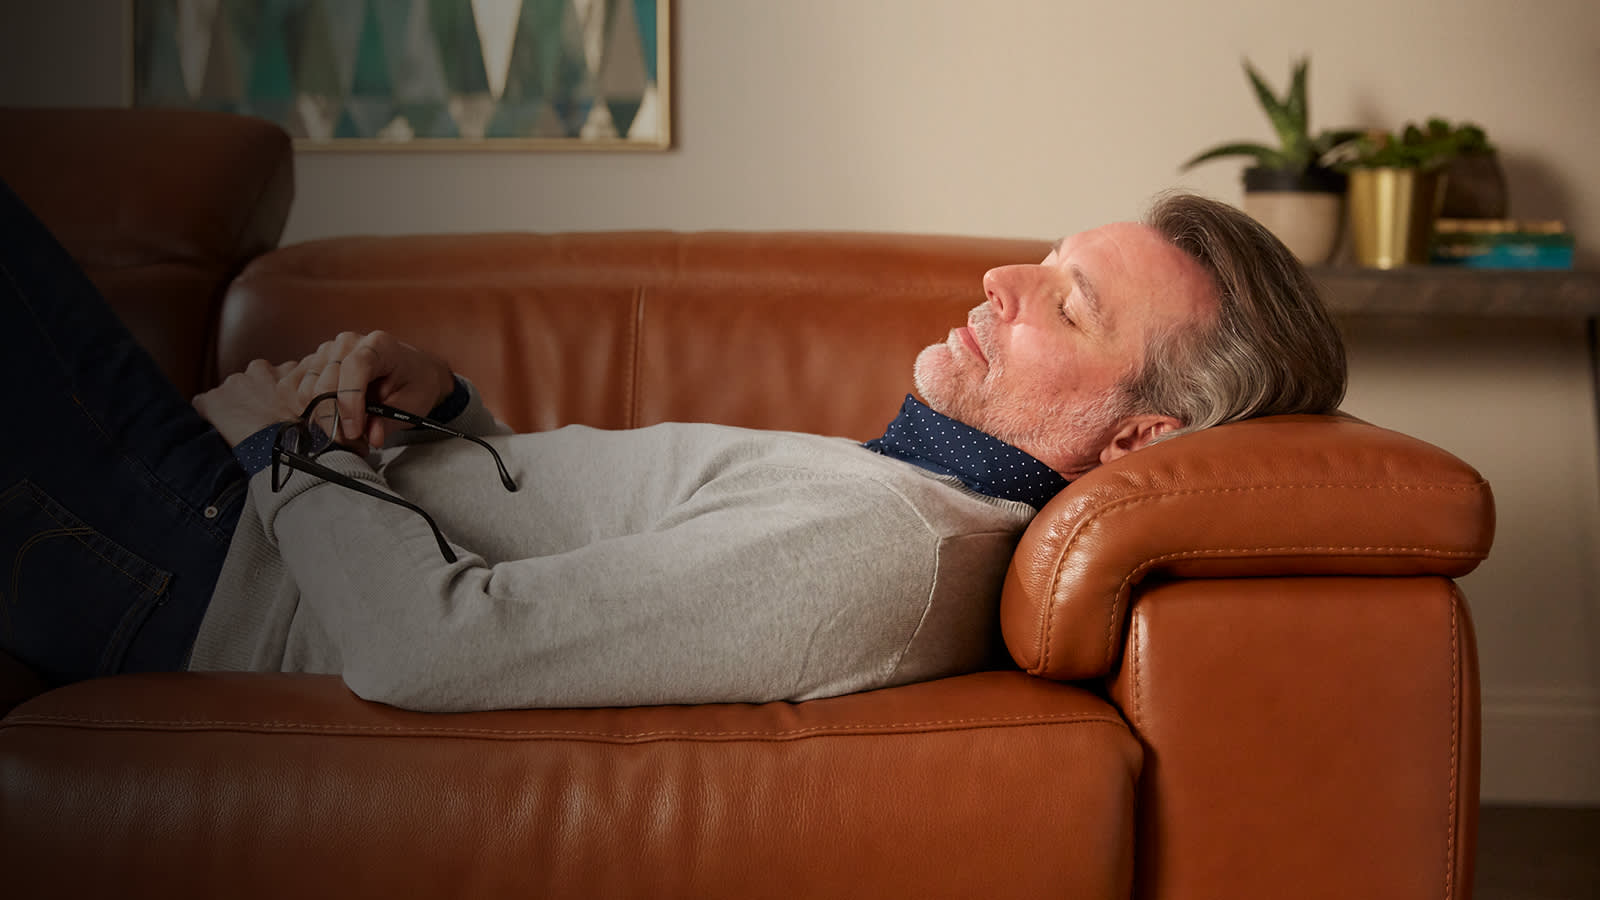 Man relaxing on brown leather sofa